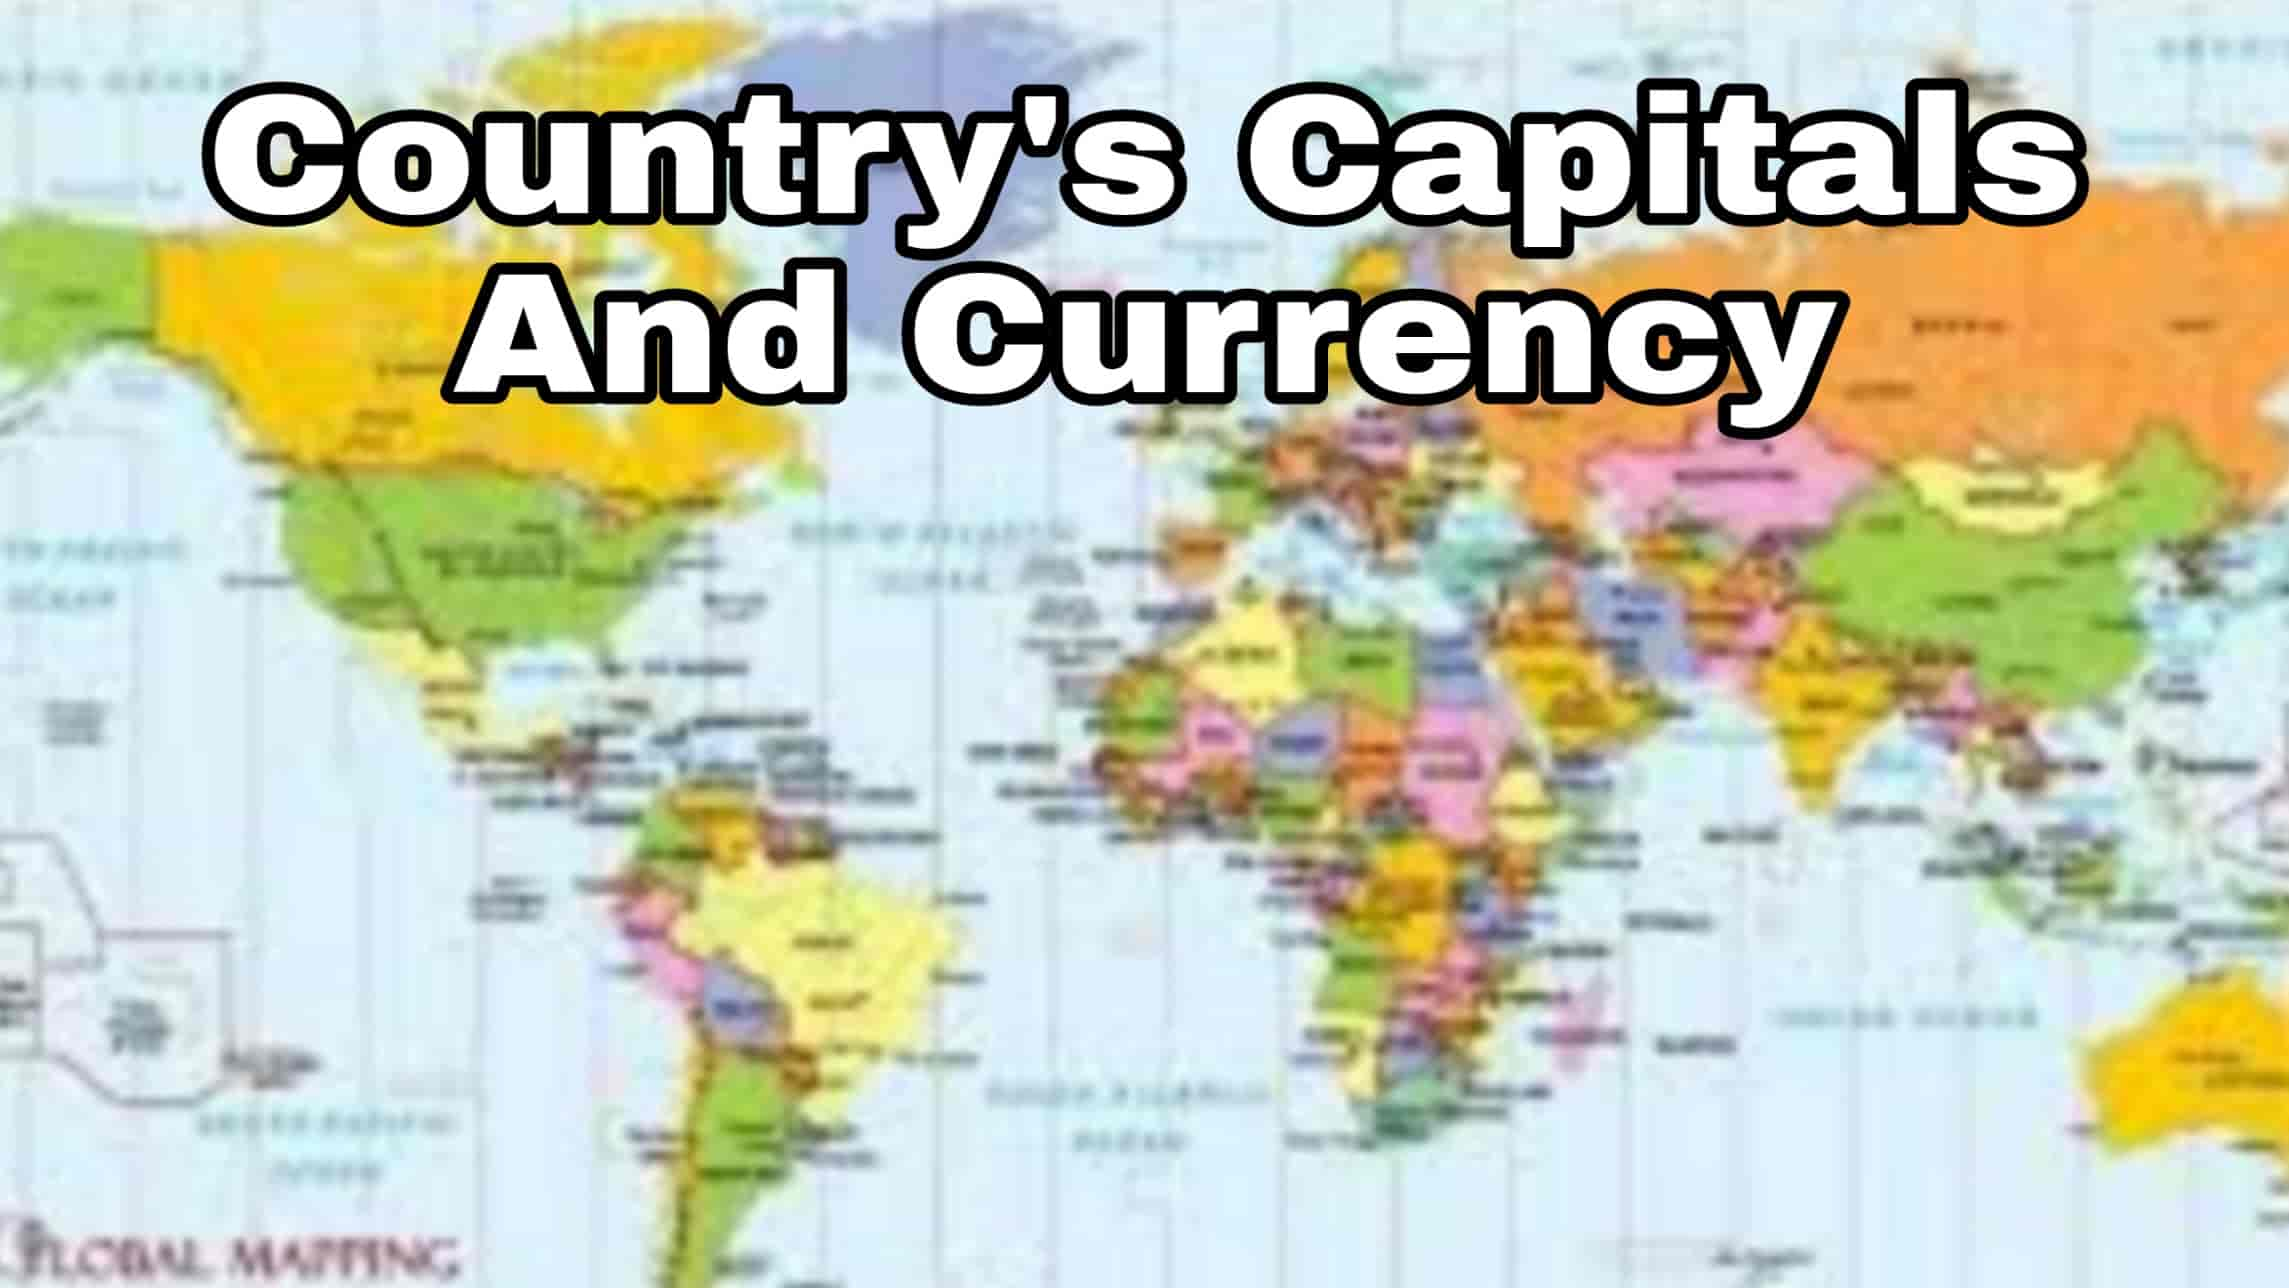 GK Countries Capitals and Currency Quiz Multiple Choice